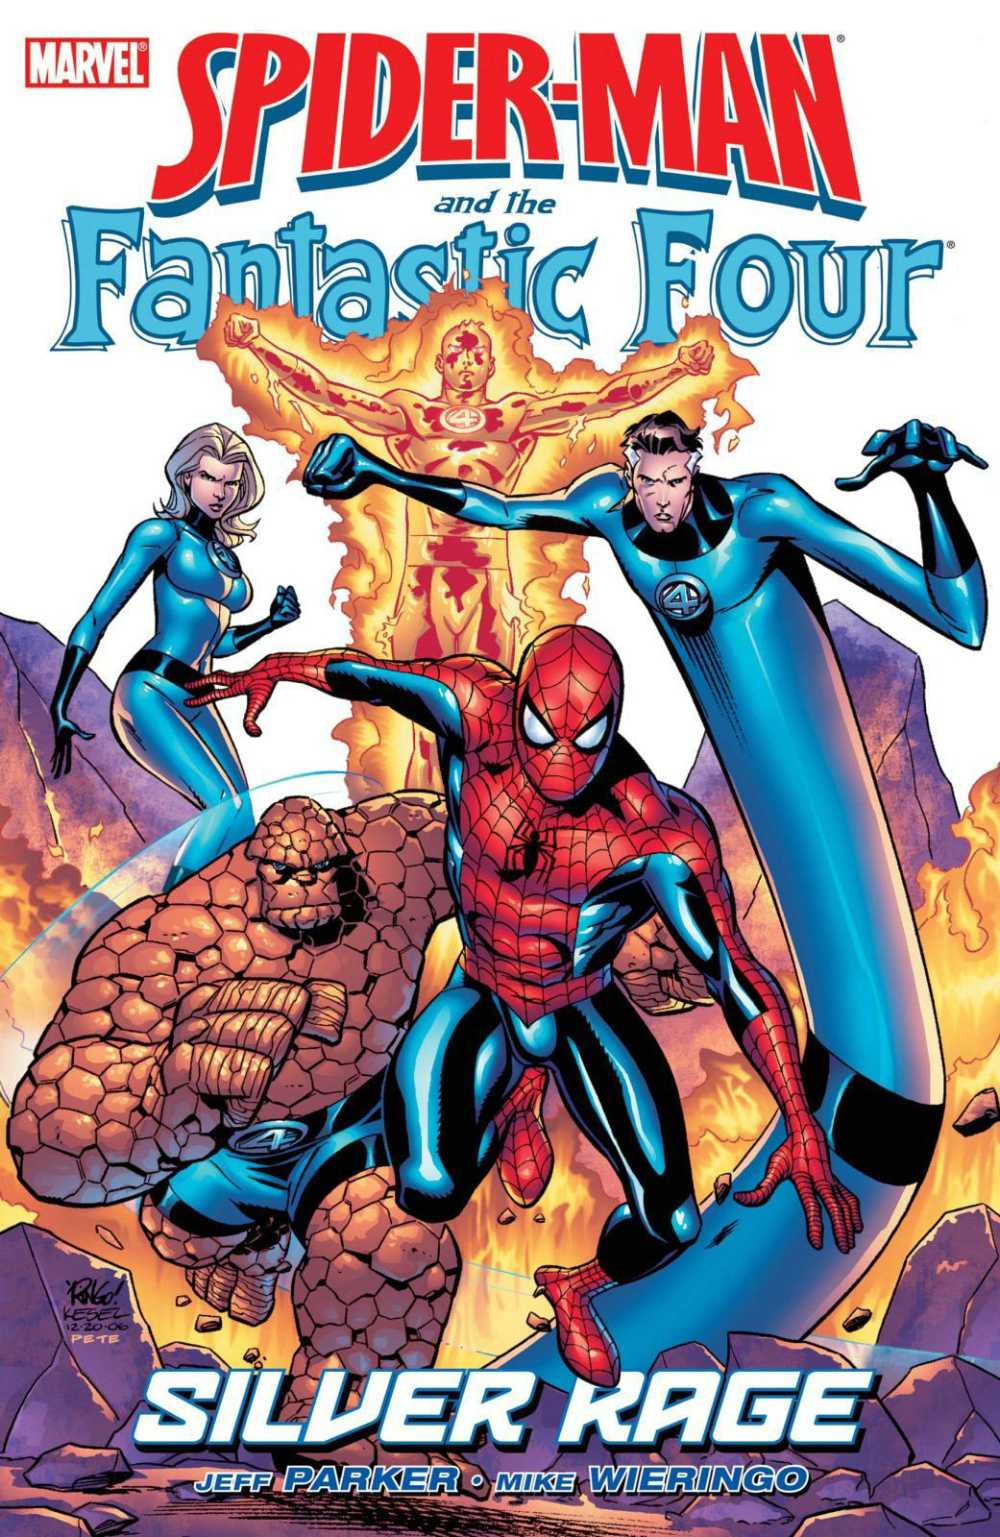 Read more about the article Comic Book Review – Spider-Man and the Fantastic Four: Silver Rage